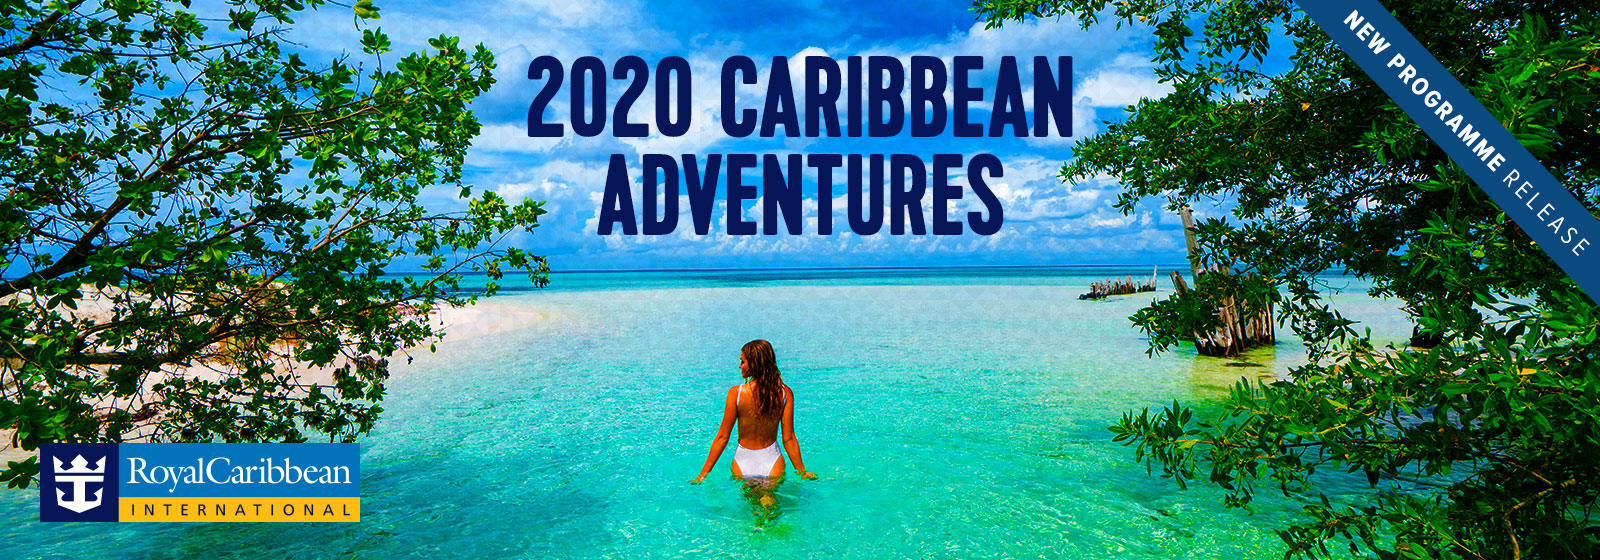 royal-caribbean-2020